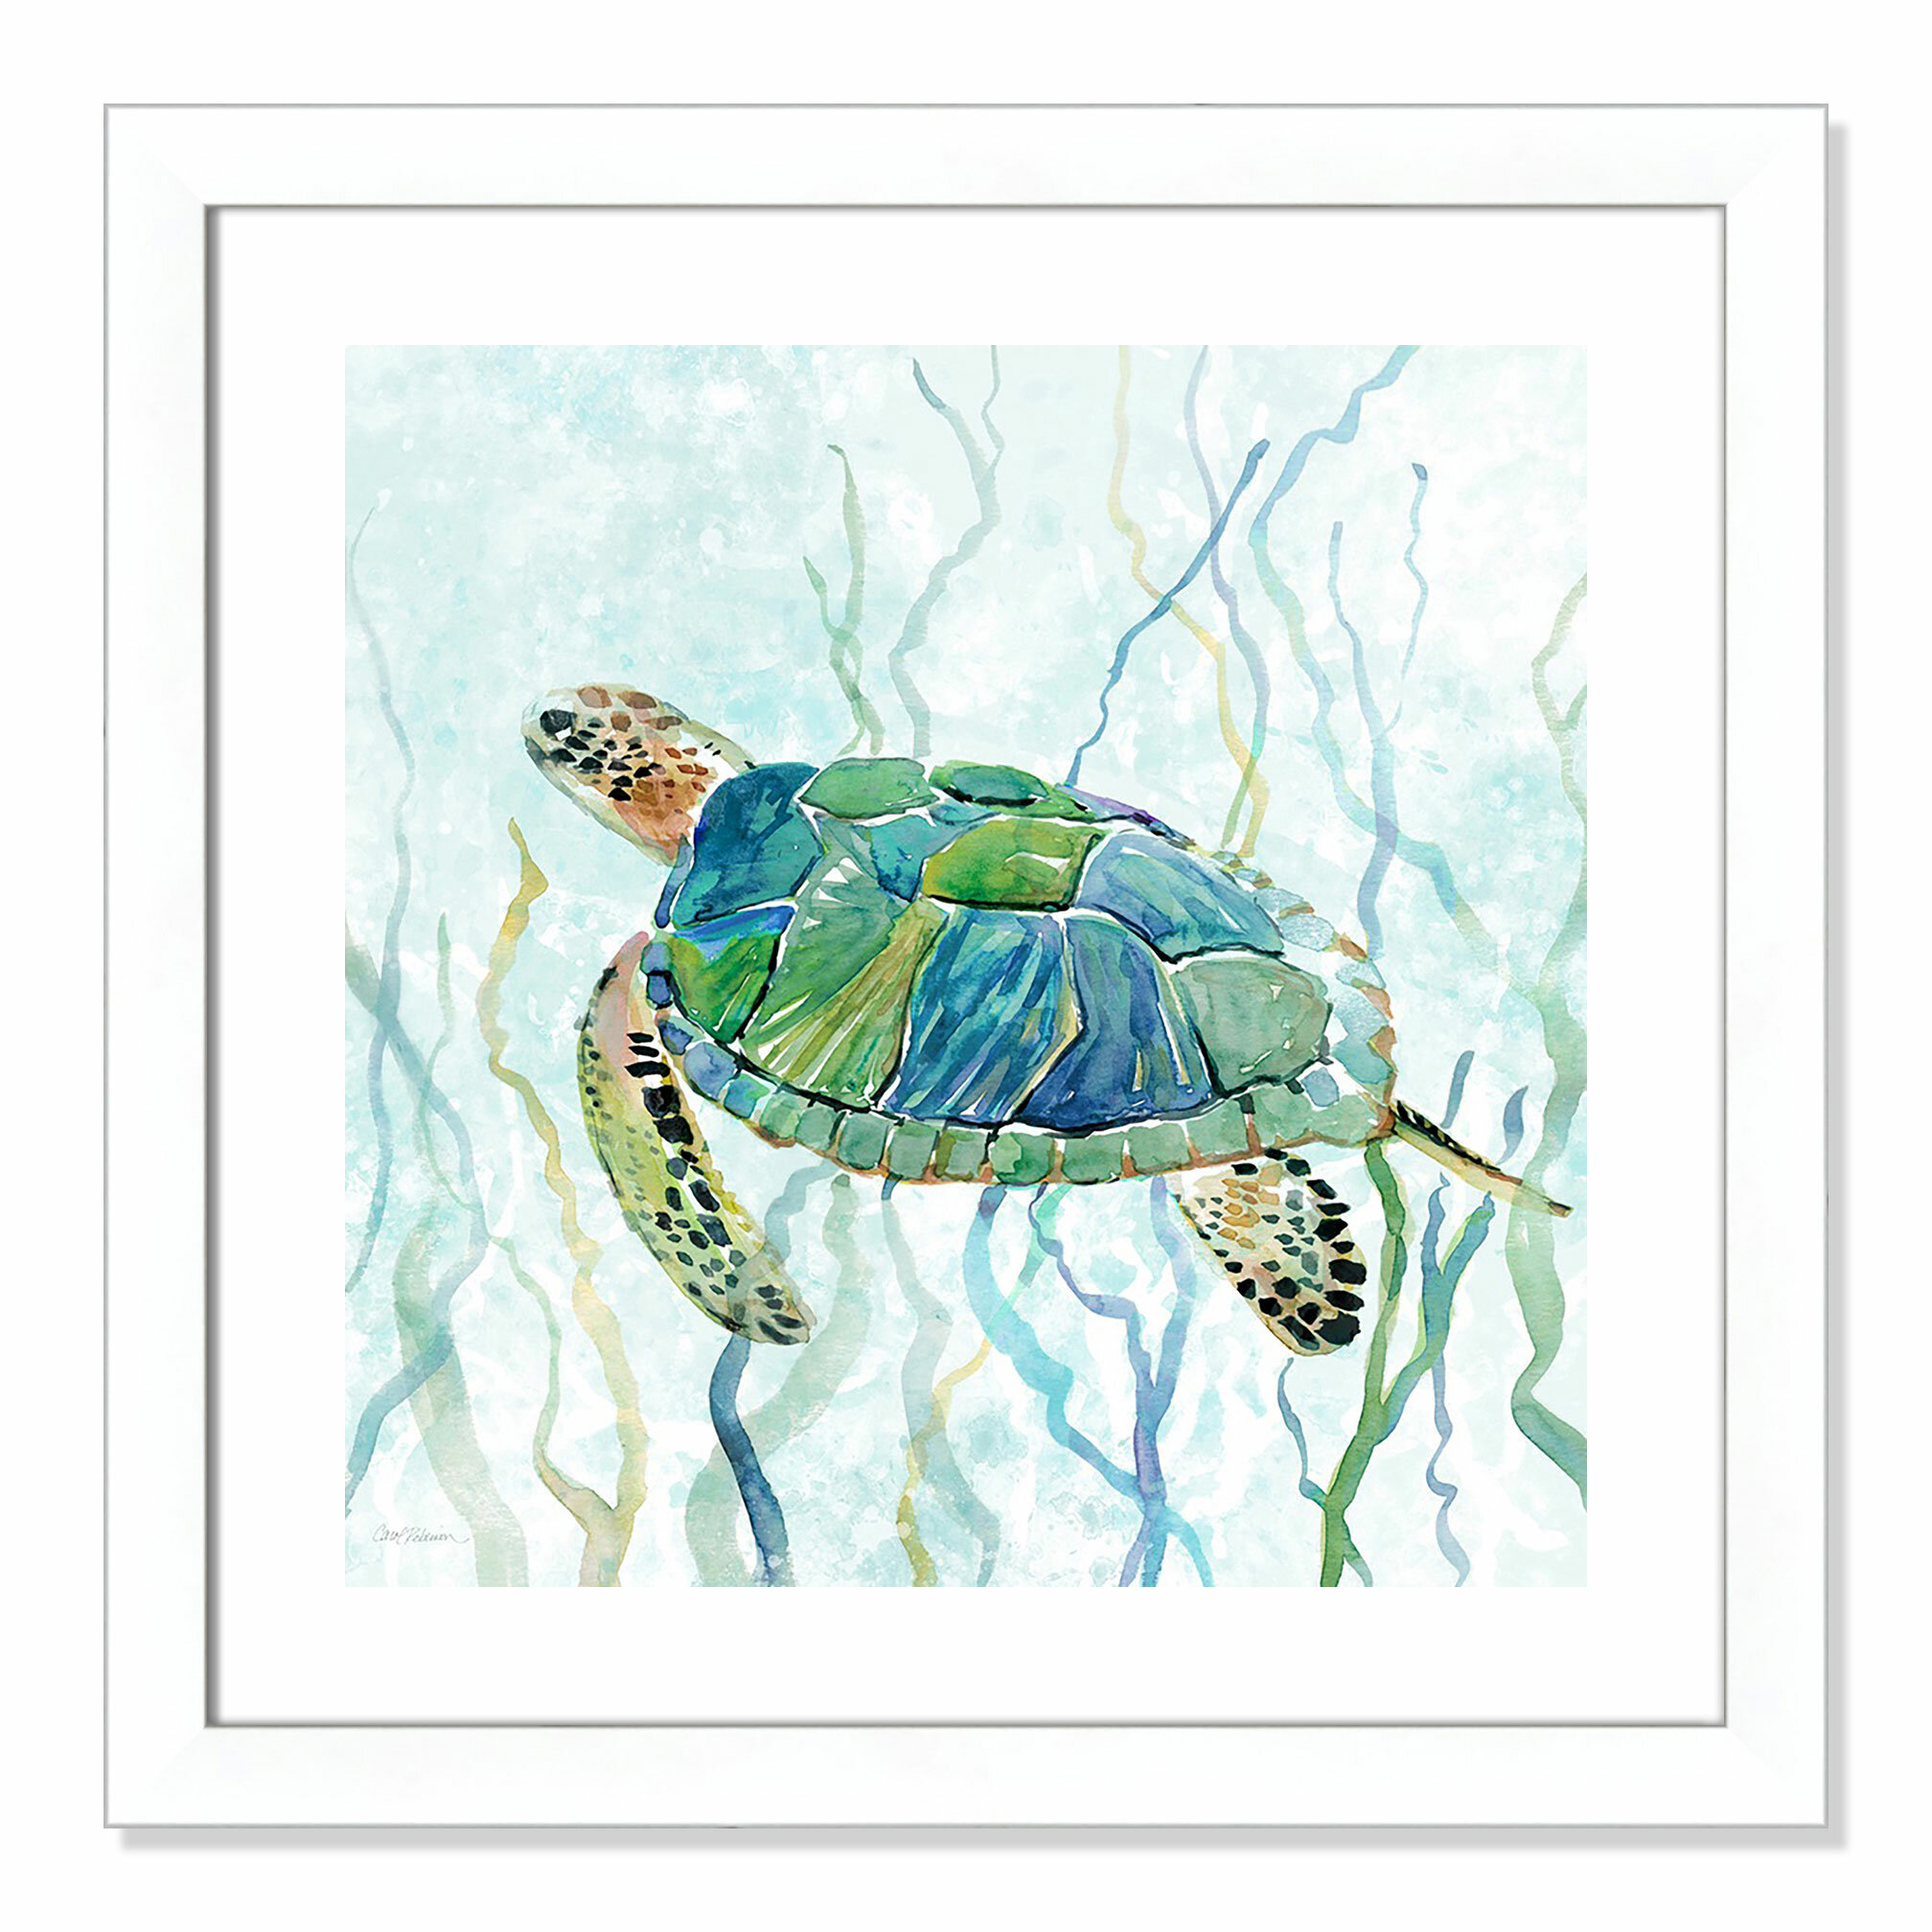 Turtle Funny wall art printed on canvas 22 X 16 inch solid frame